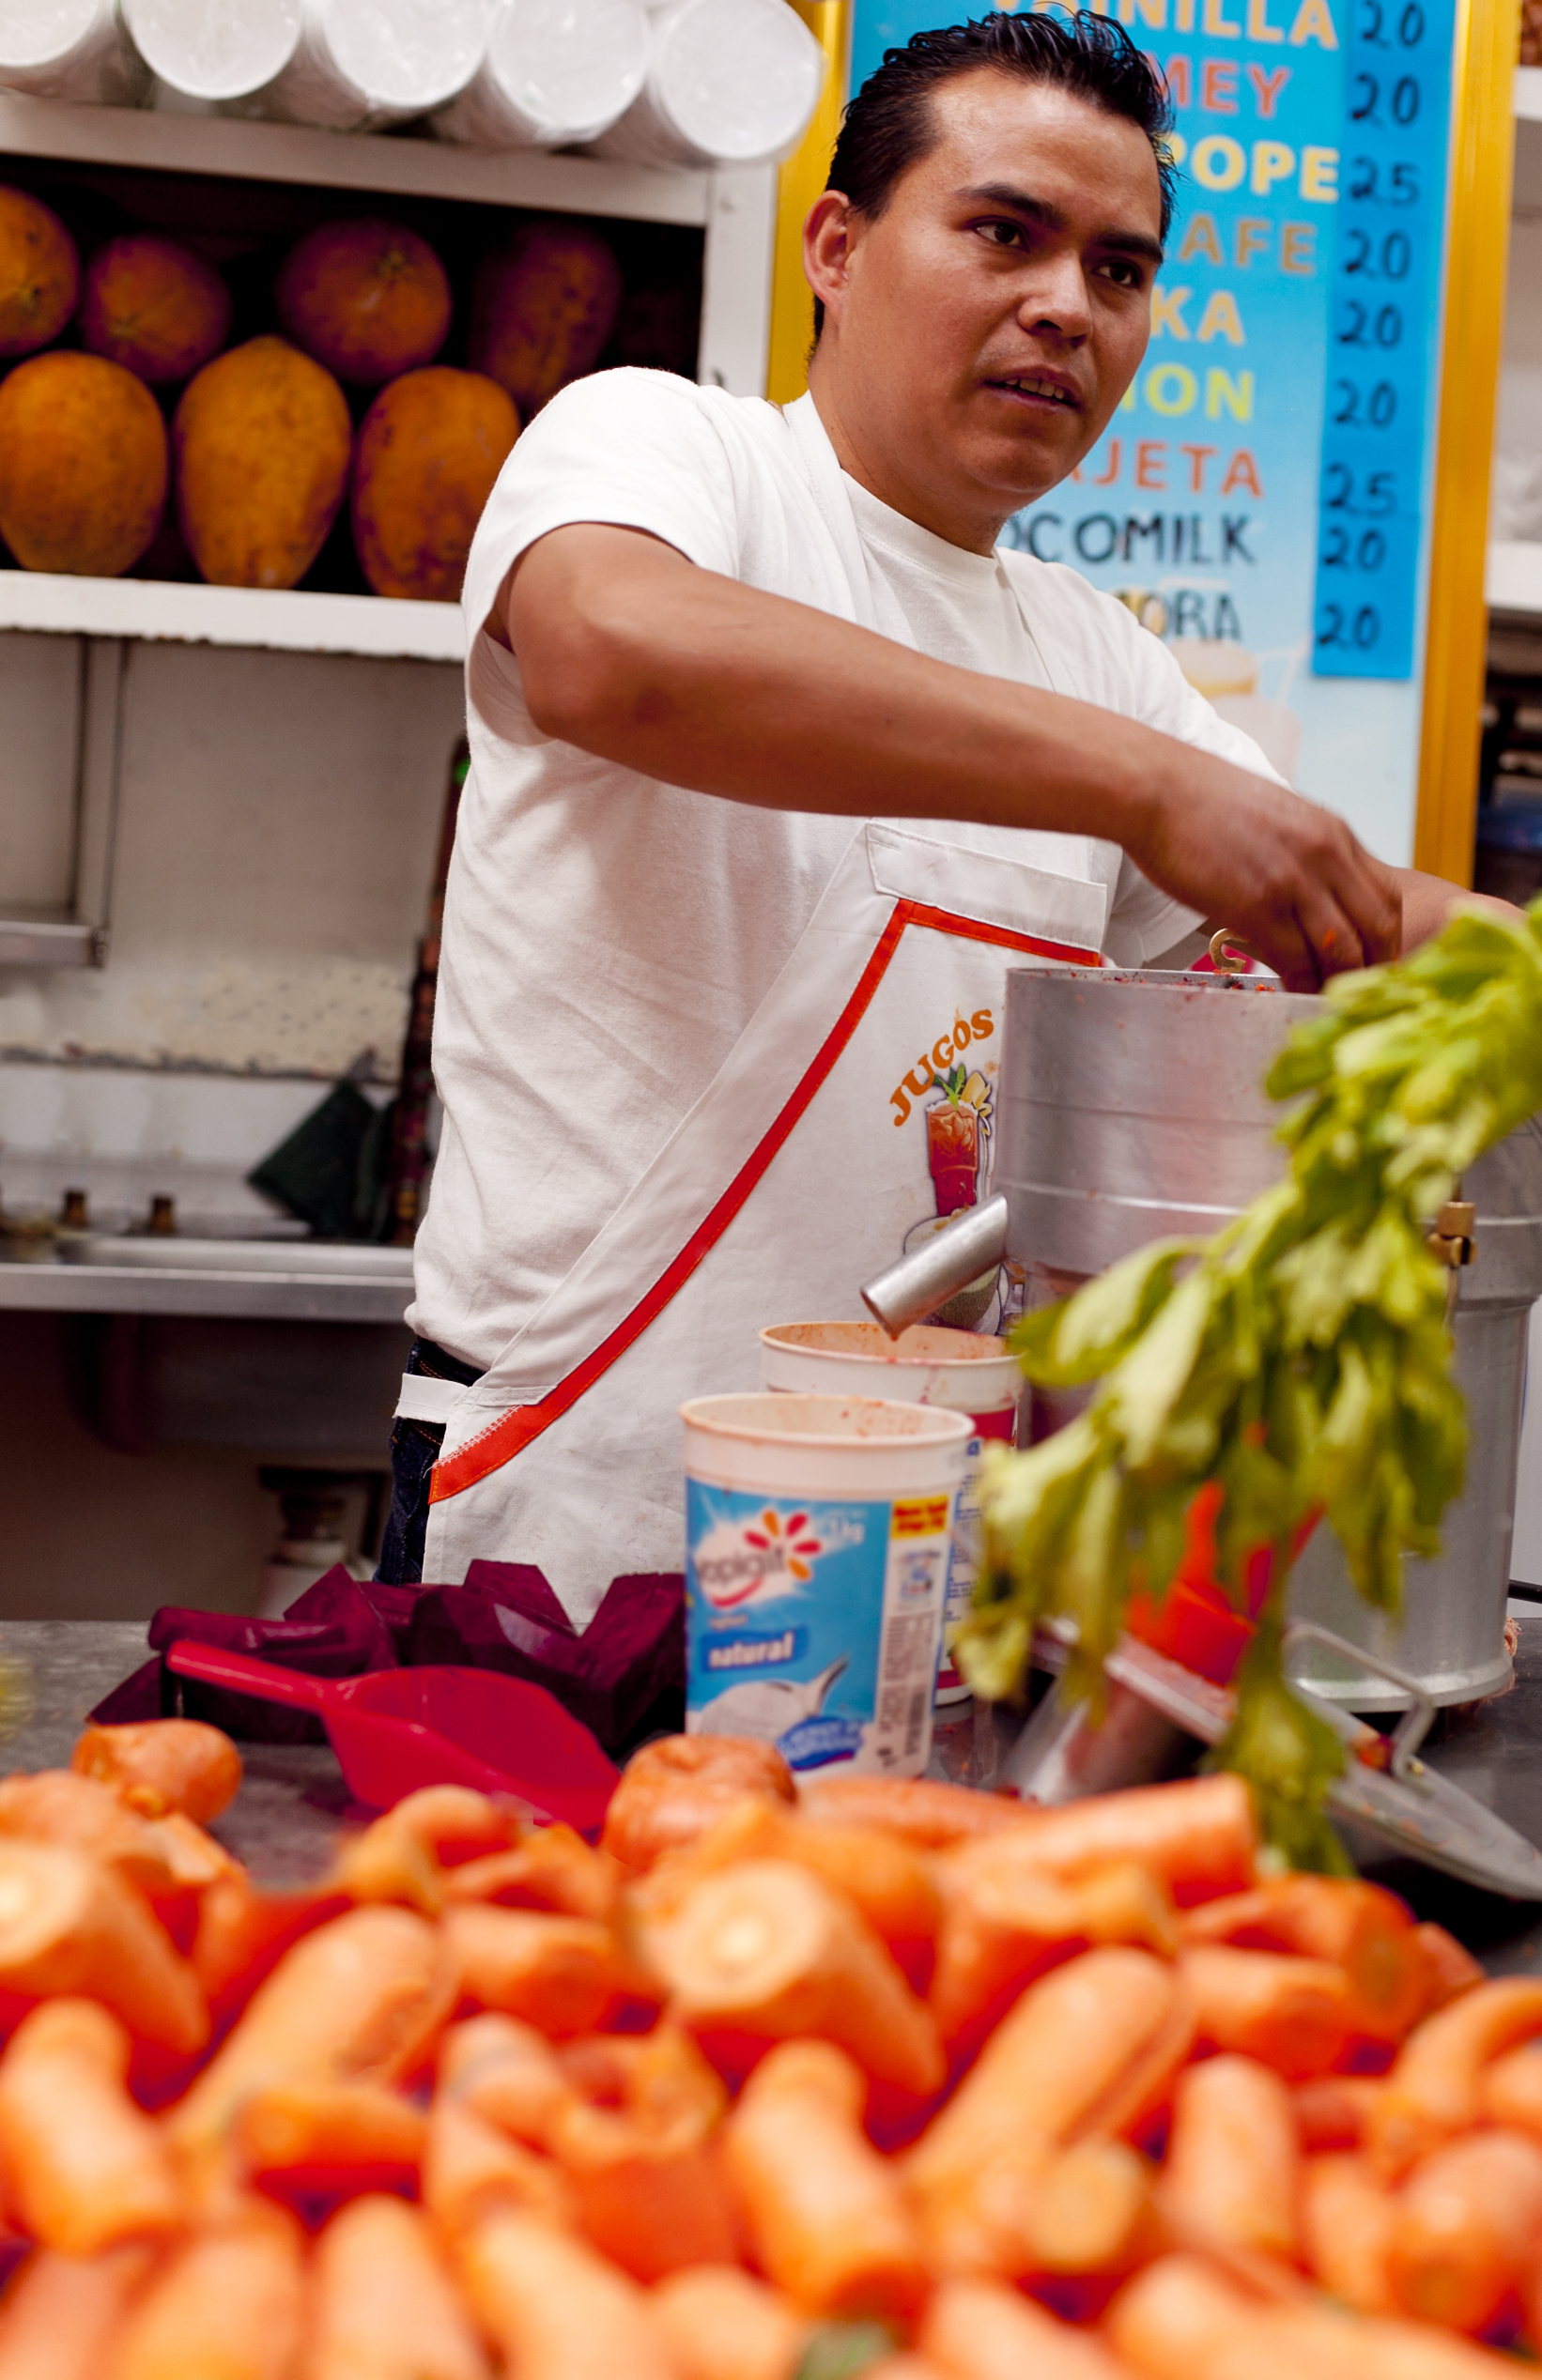 Copy of Market vendor with carrots in Mexico City